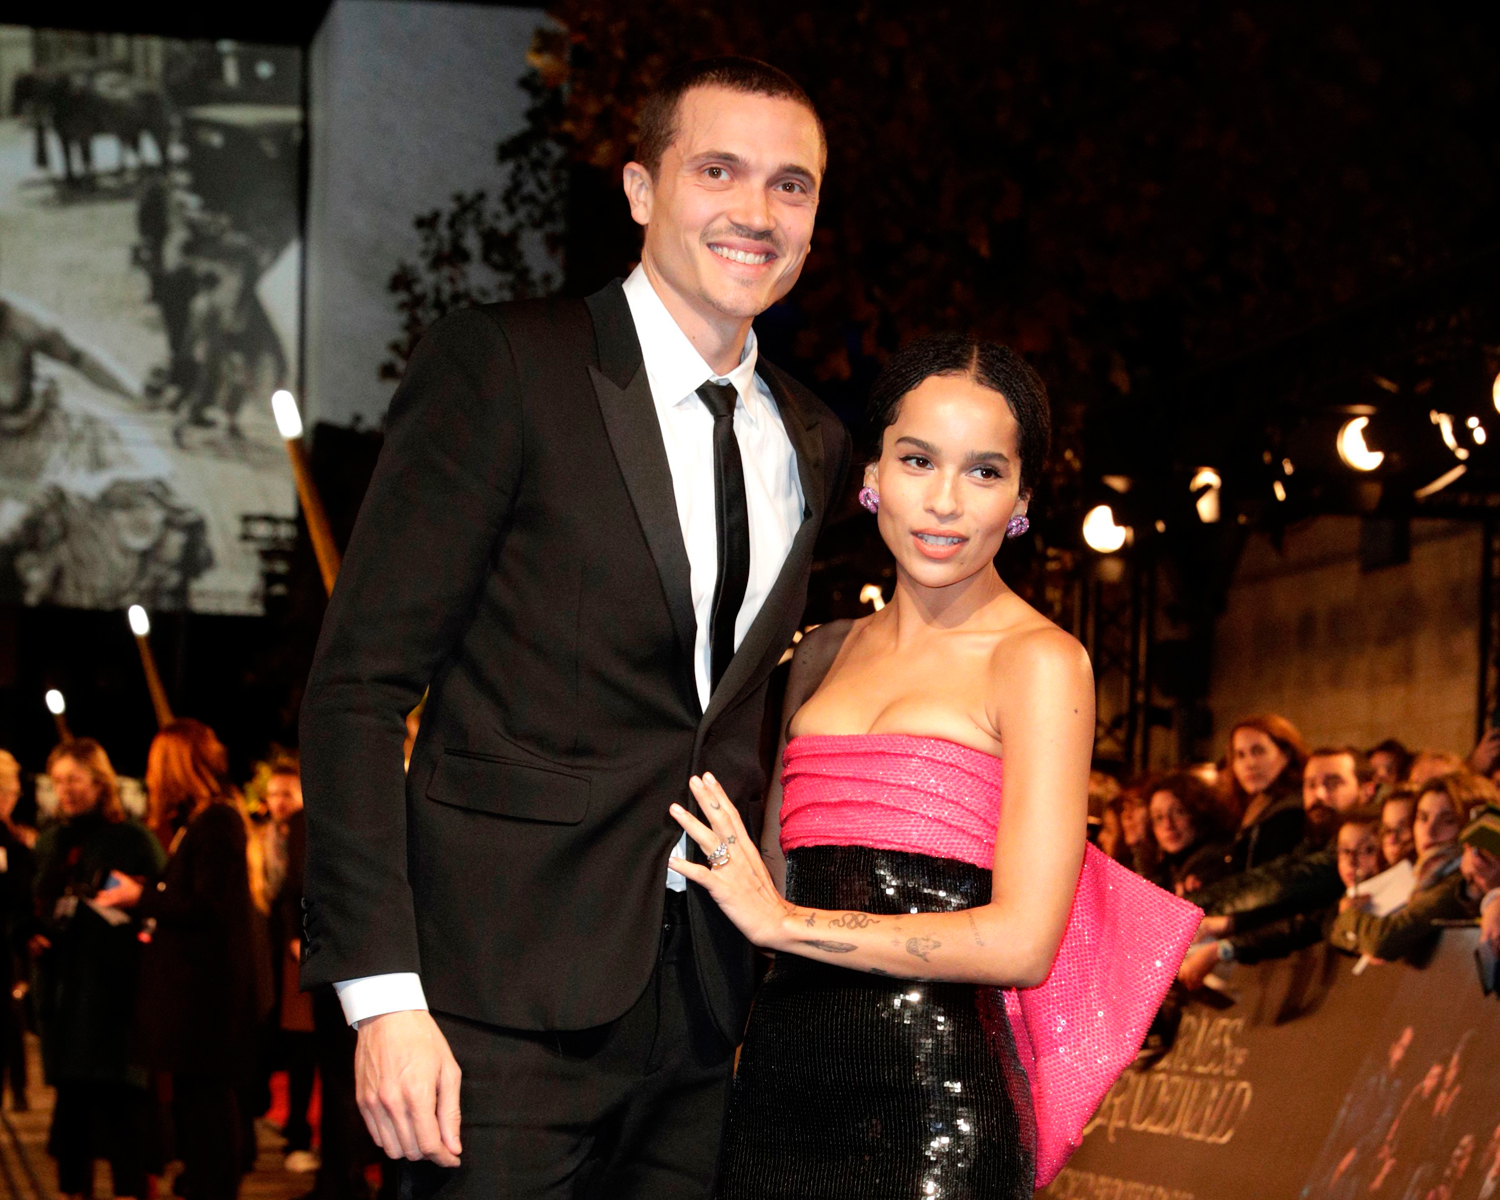 Ð?аÑ?Ñ?инки по запÑ?оÑ?Ñ? zoÃ« kravitz and karl glusman